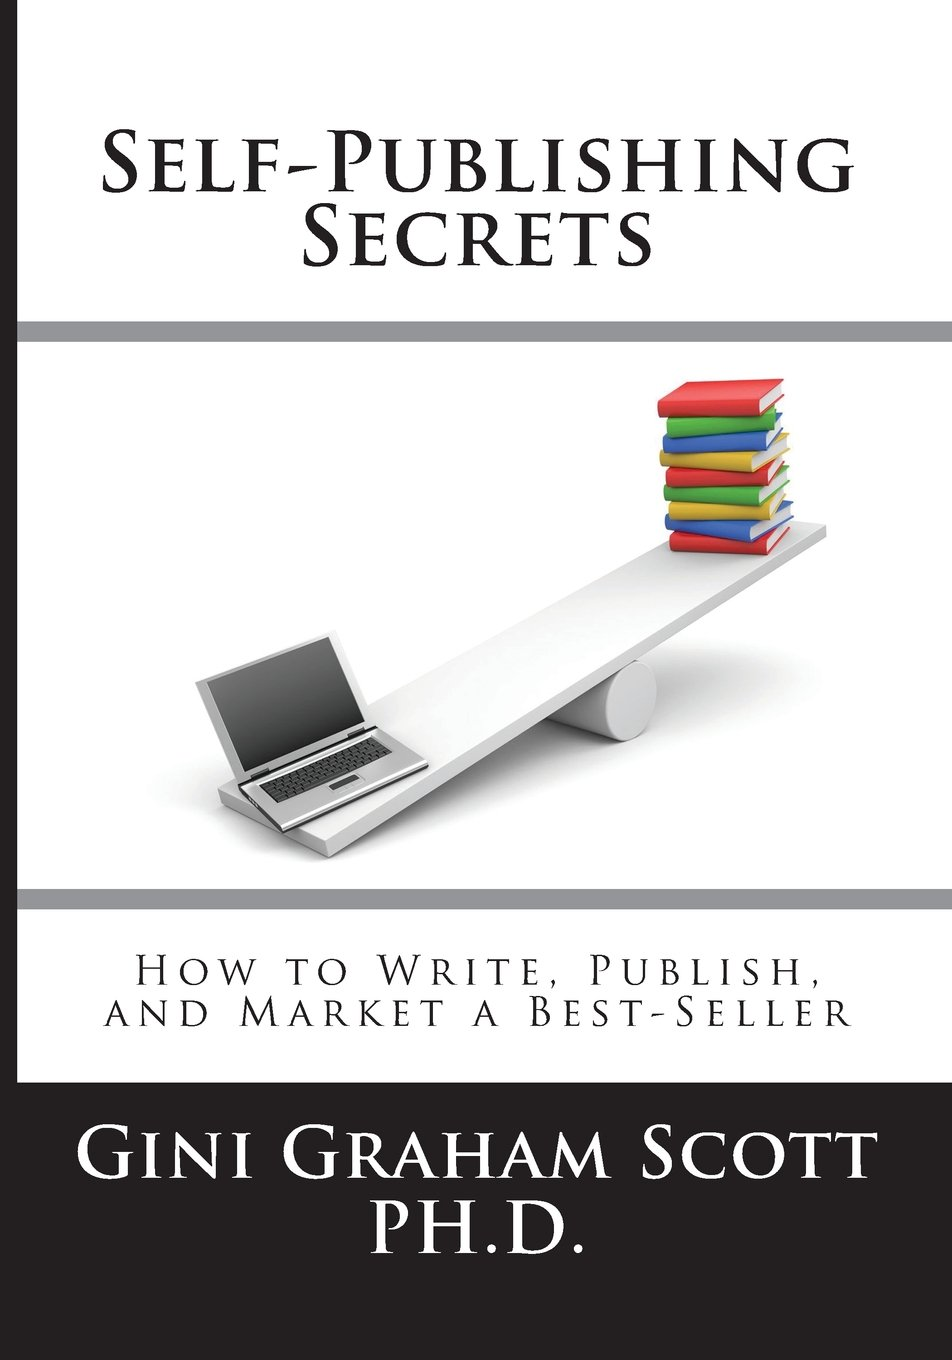 Self-Publishing Secrets: How to Write, Publish, and Market a Best-Seller or Use Your Book to Build Your Business